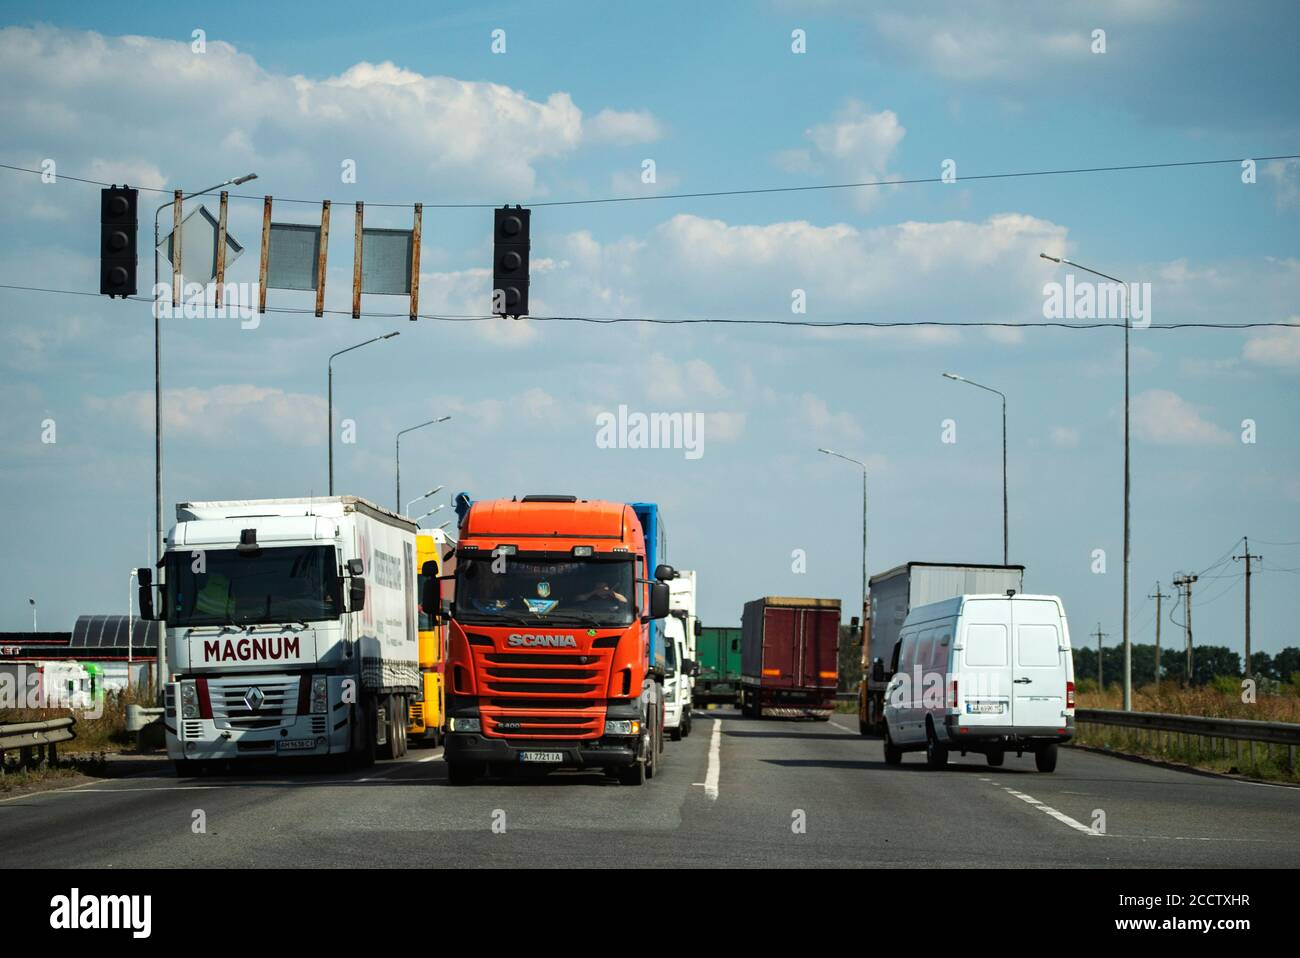 renault magnum high resolution stock photography and images alamy https www alamy com renault magnum and scania trucks on the highway near kiev image369310253 html